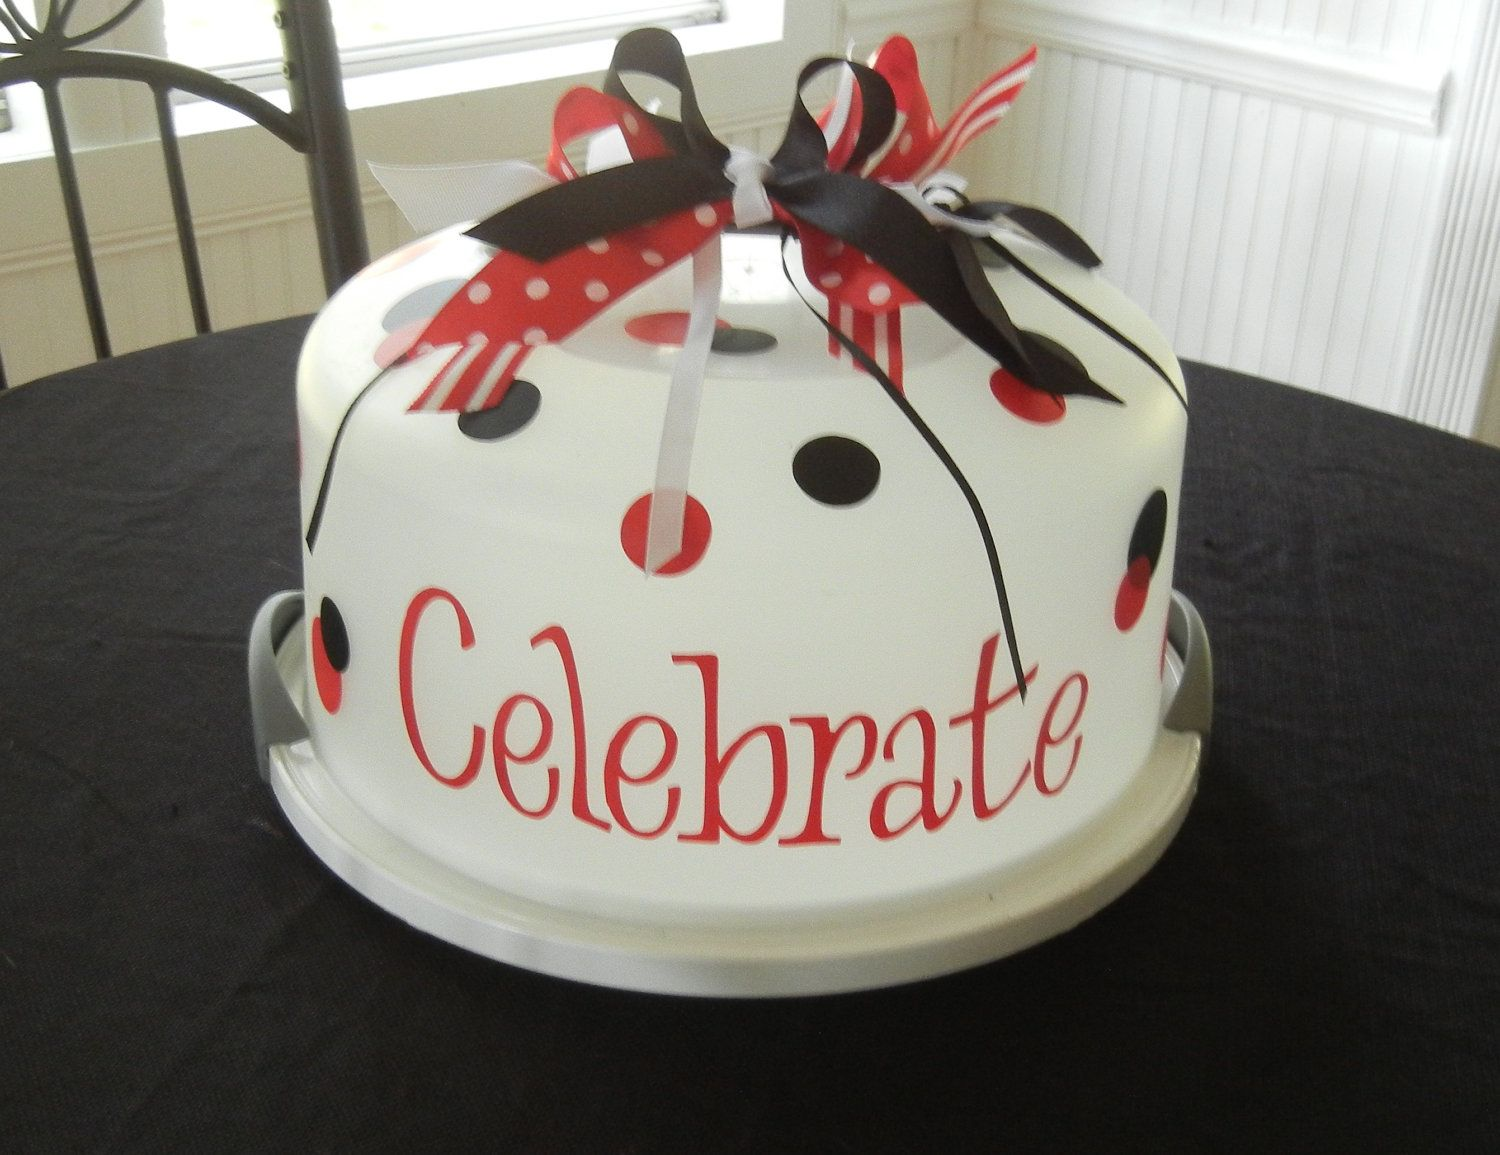 Personalized Cake Carrier. $15.00 via Etsy. & Personalized Cake Carrier. $15.00 via Etsy. | Cricut | Pinterest ...